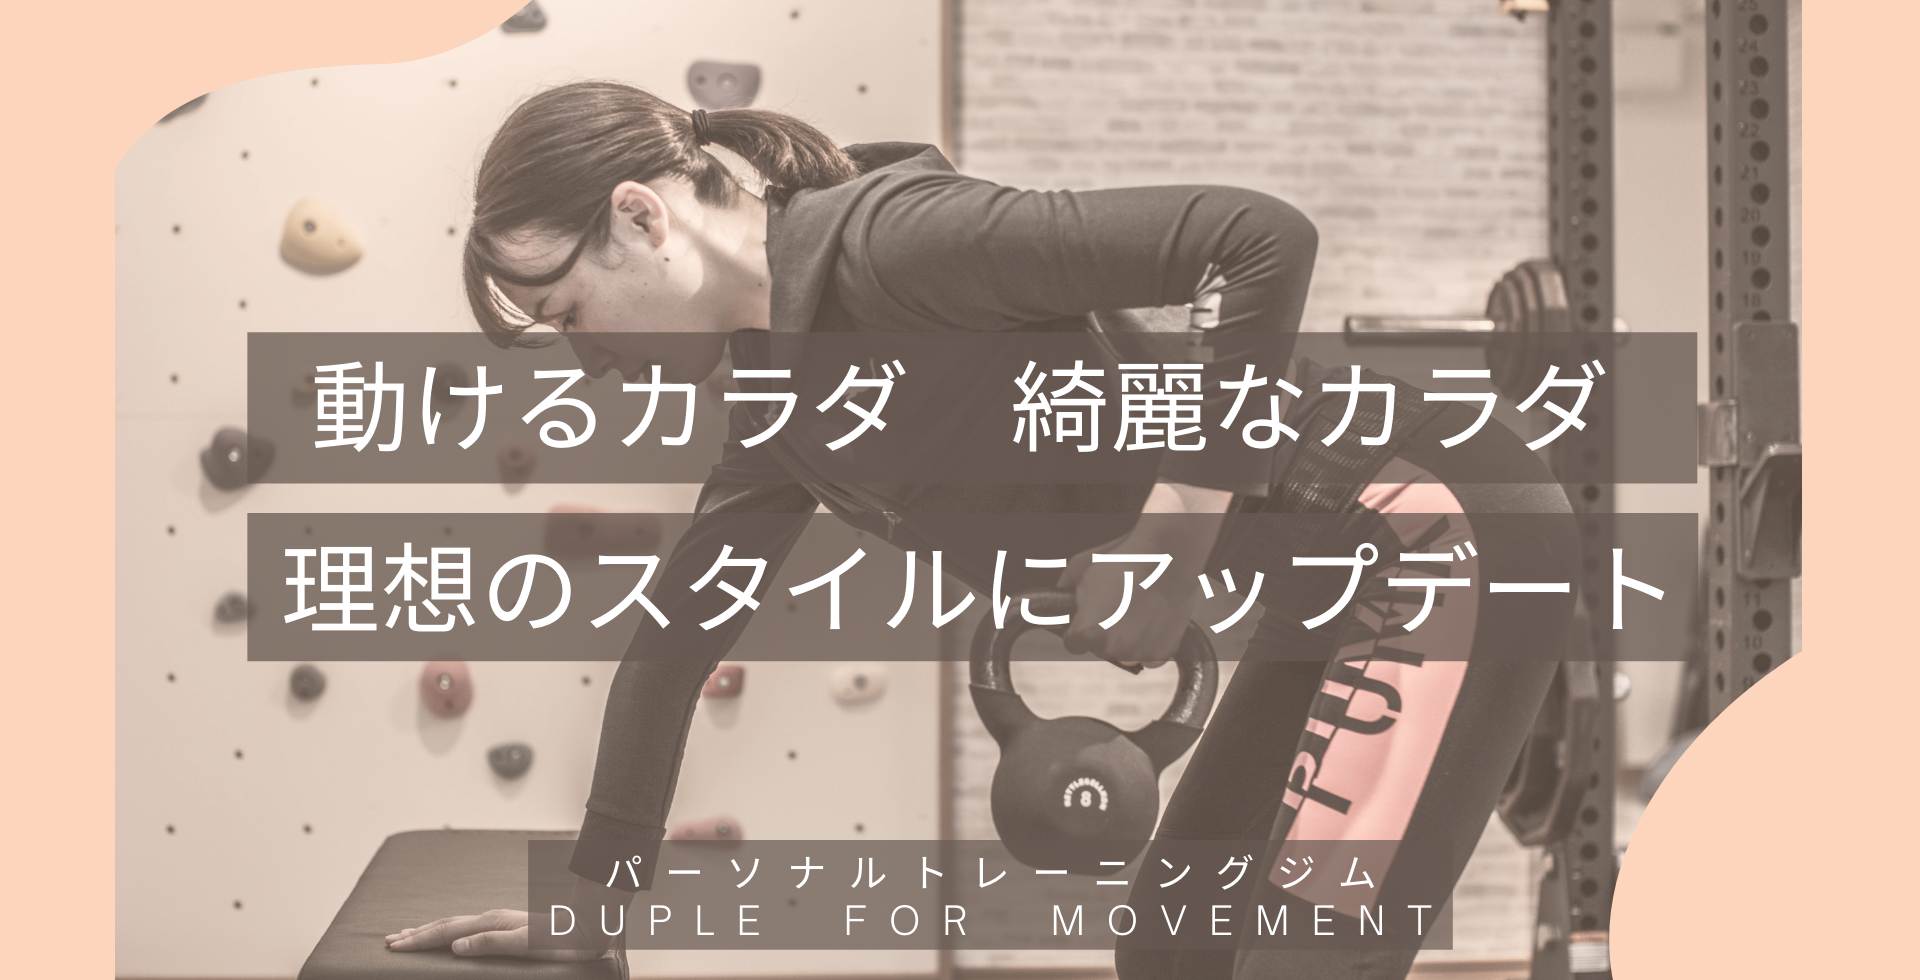 duple FOR MOVEMENT (1)